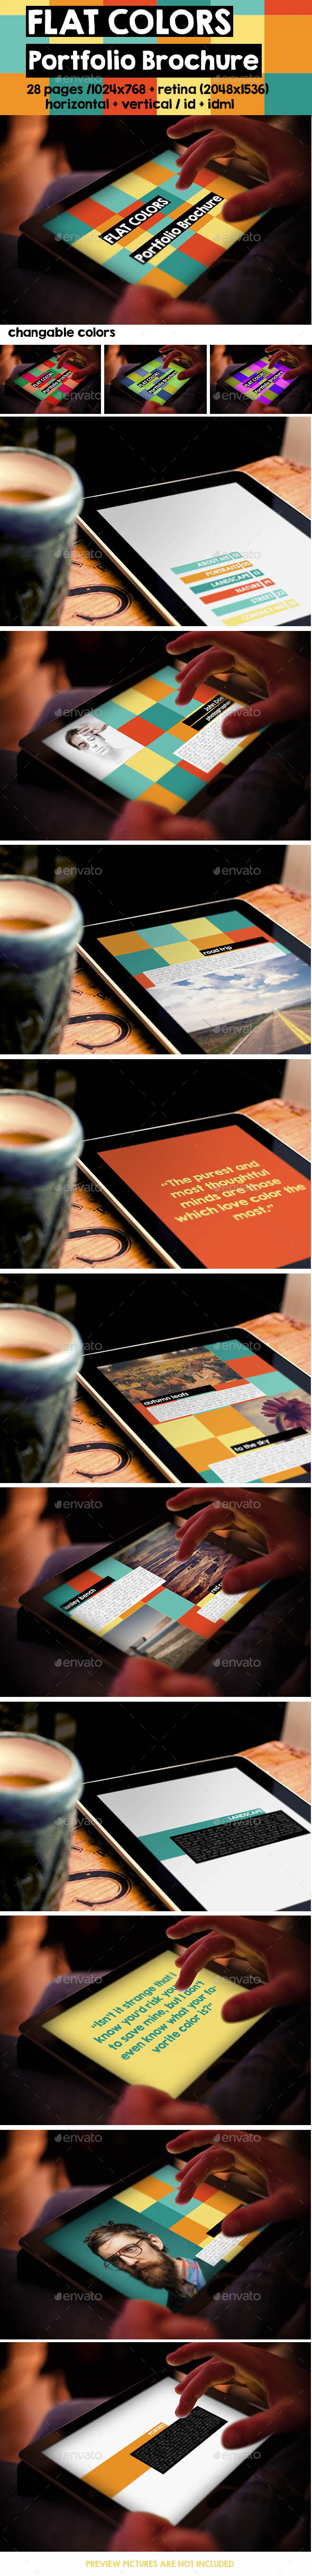 iPad & Tablet Flat Colors Portfolio Brochure